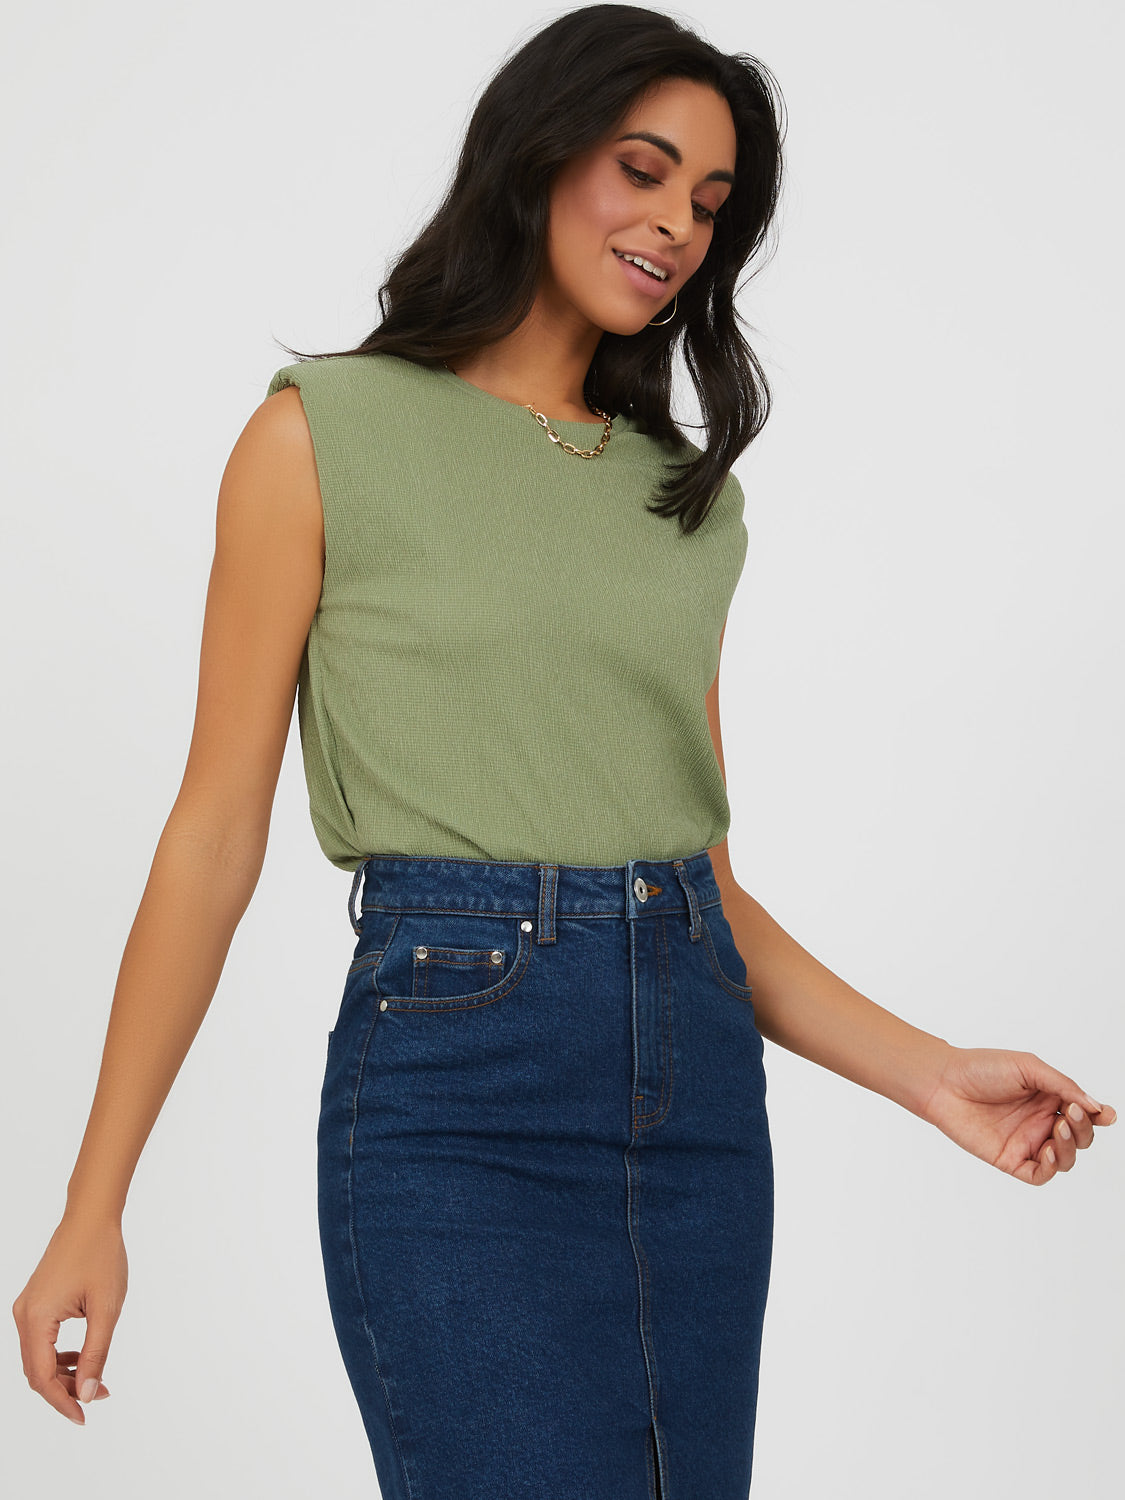 Shoulder Pad Textured Knit Top